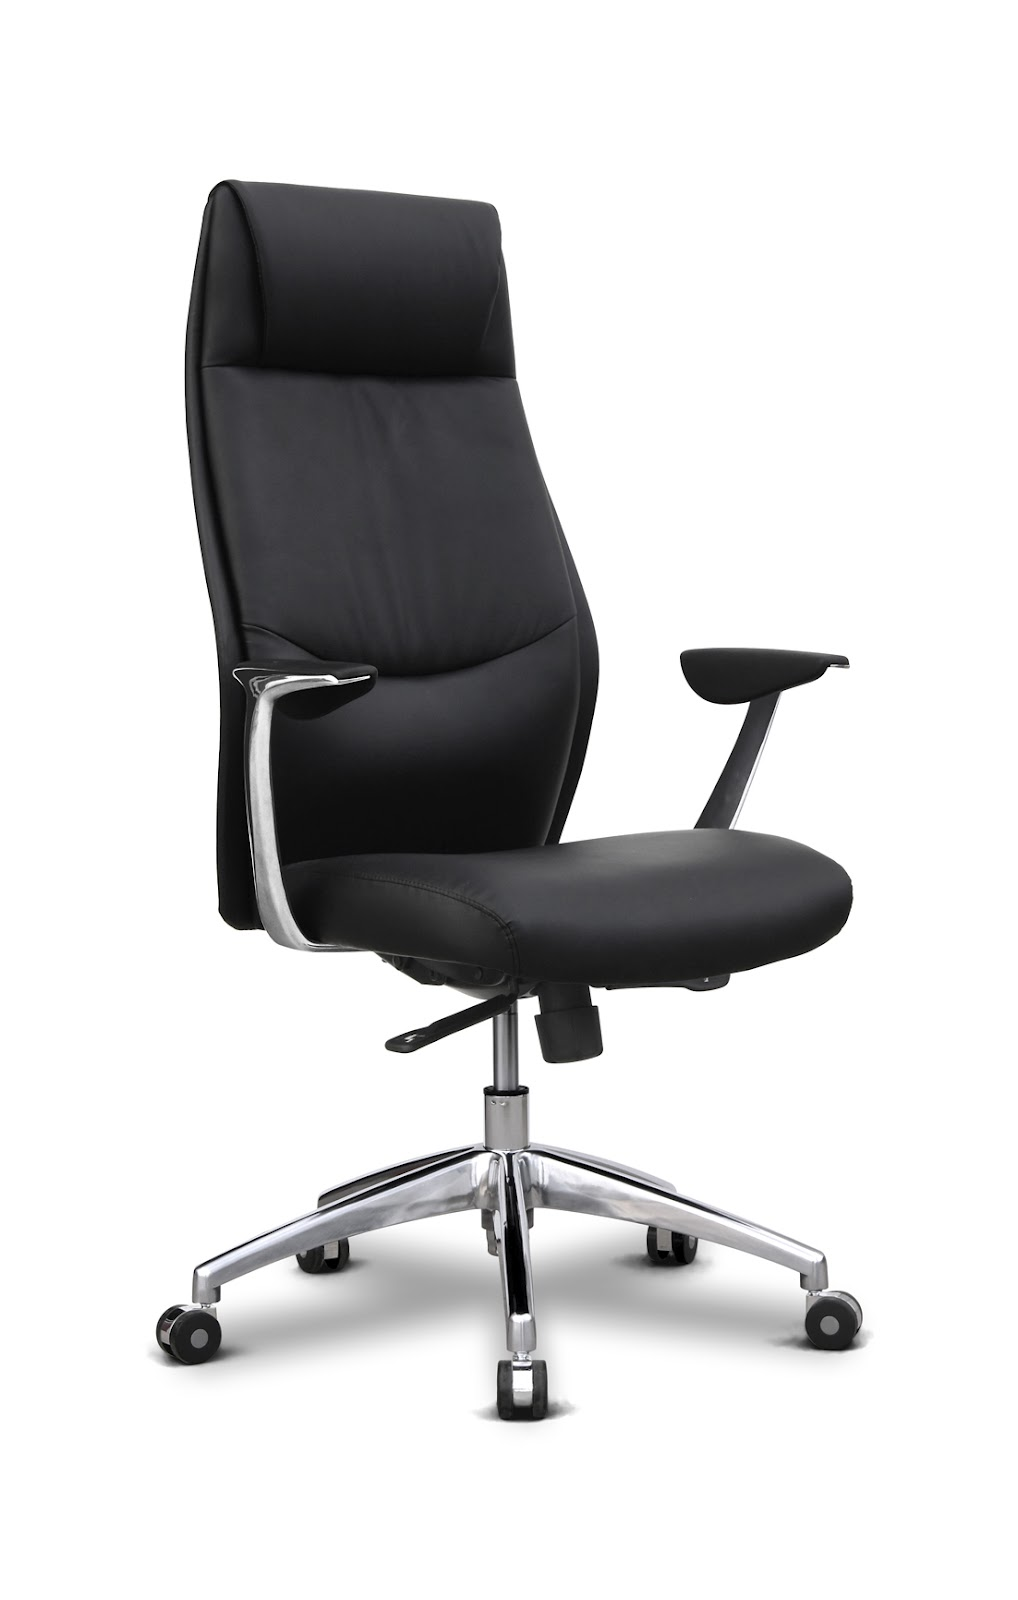 Oficina total sillas y sillones para despachos for Sillas oficina ergonomicas barcelona